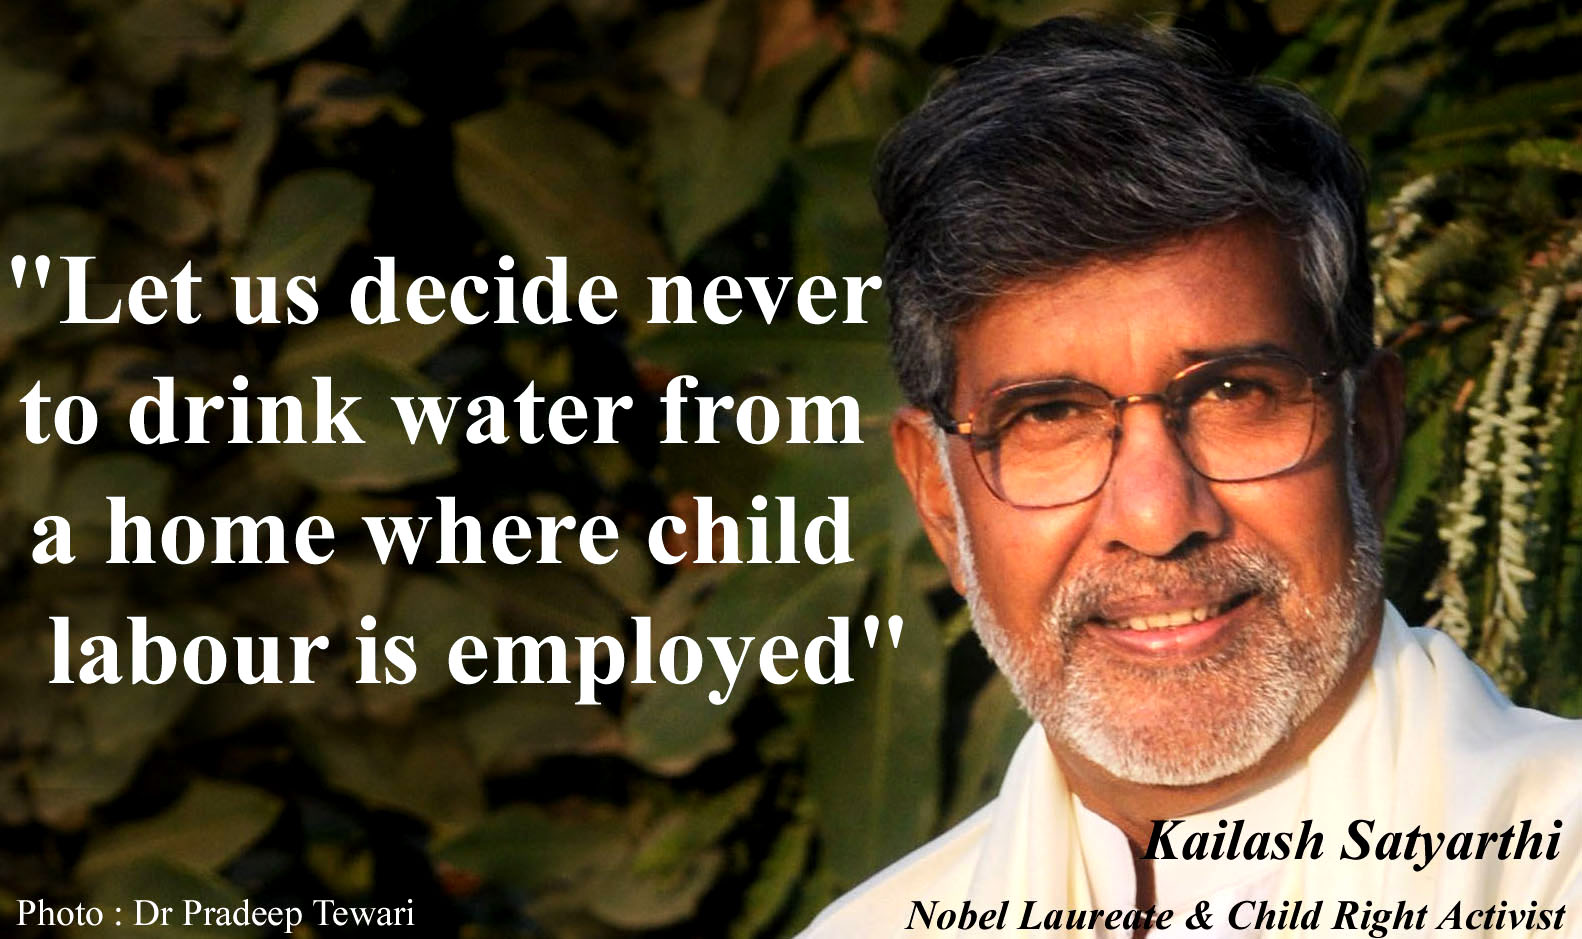 Quotes for child labour